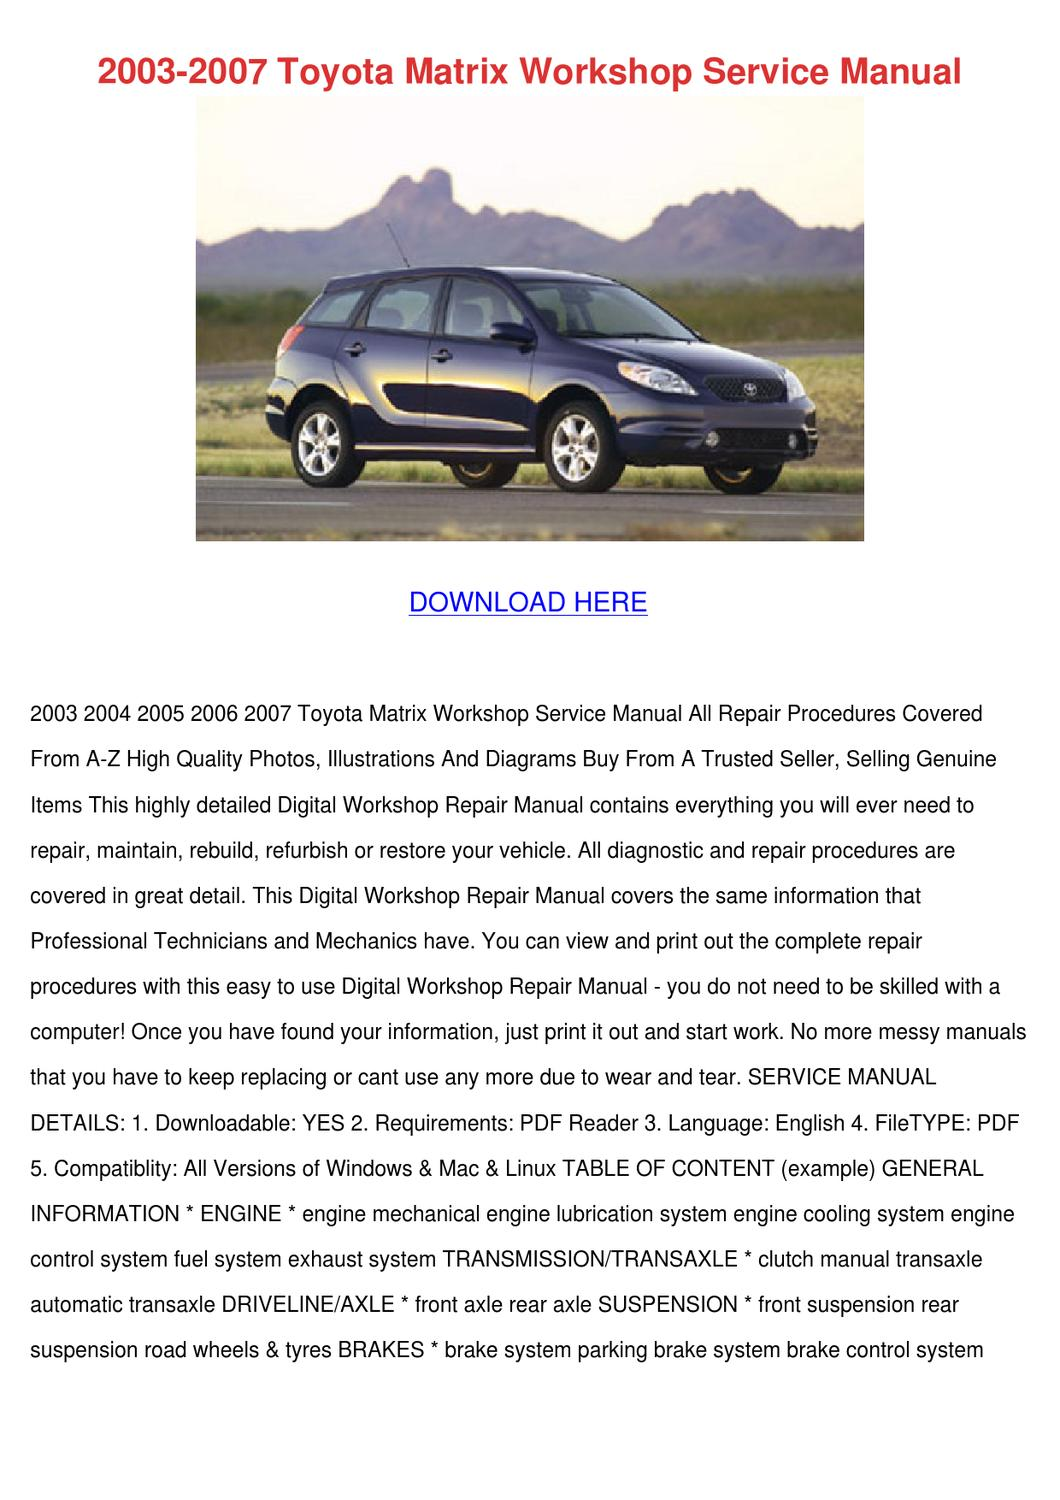 Toyota Highlander Service Manual: Brake pedal sub-assy